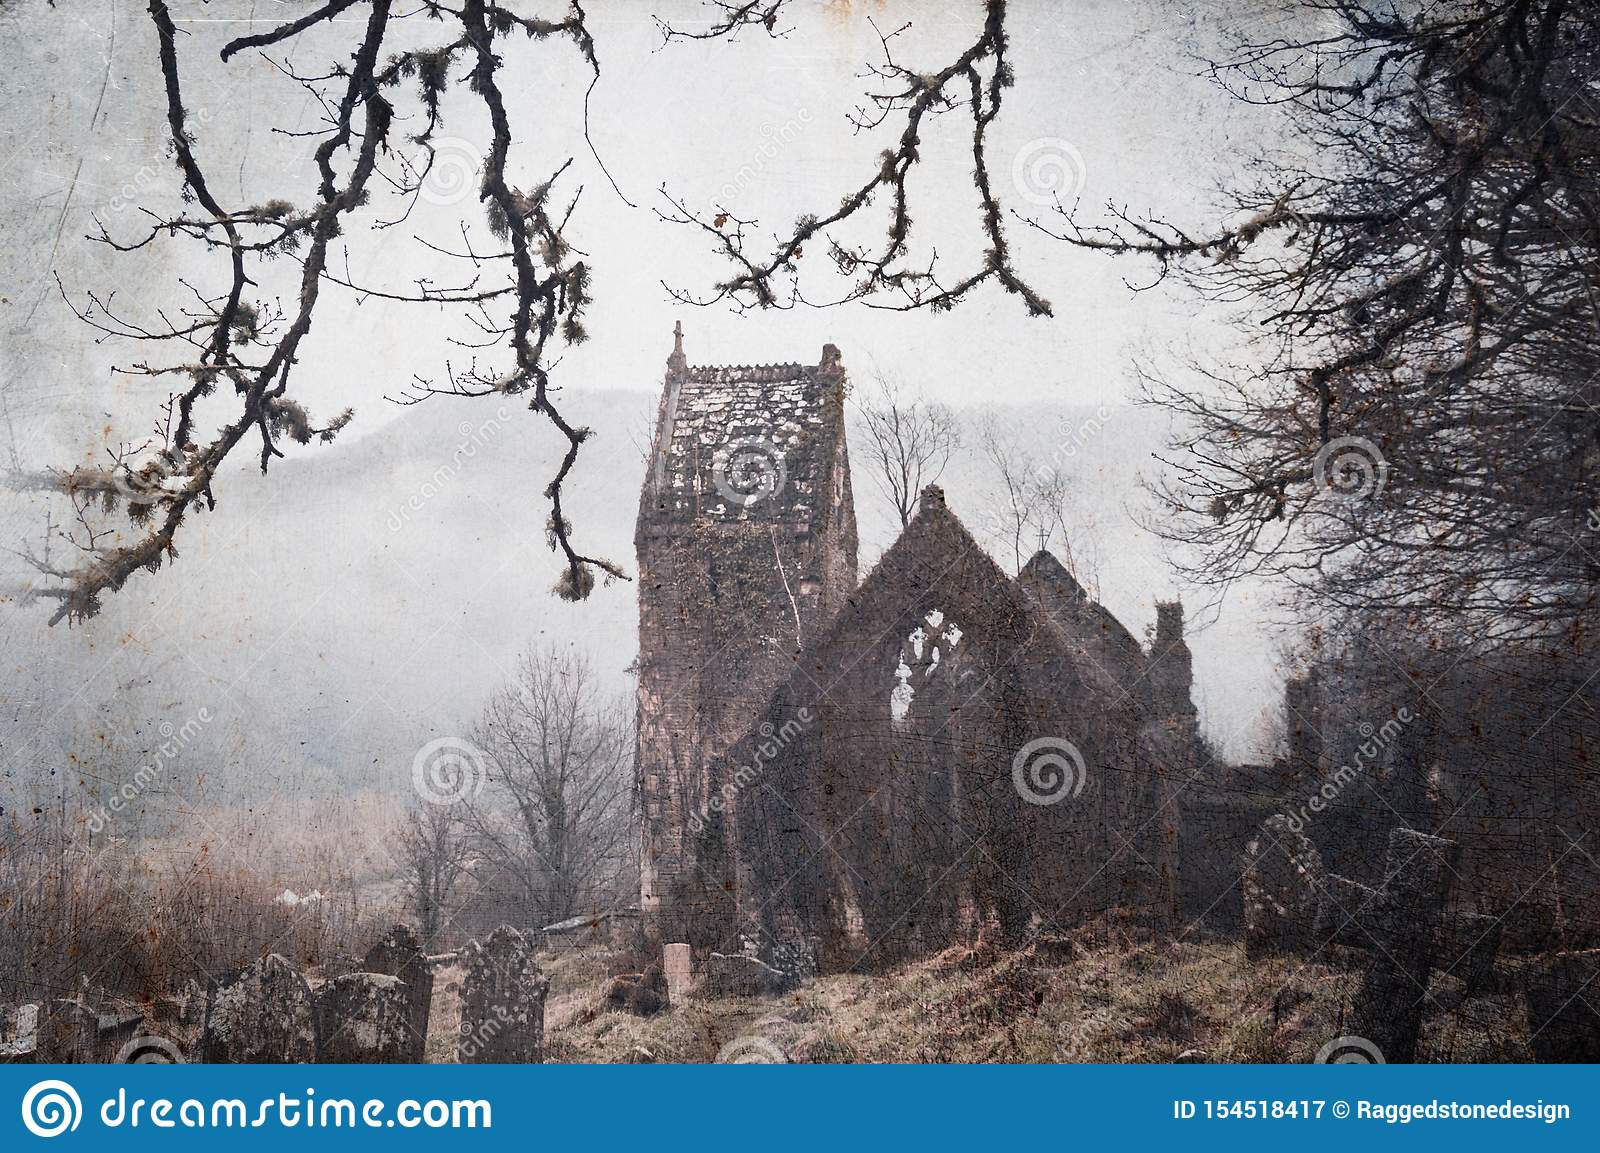 A spooky, abandoned graveyard with a ruined church in the background. With a vintage, grunge edit